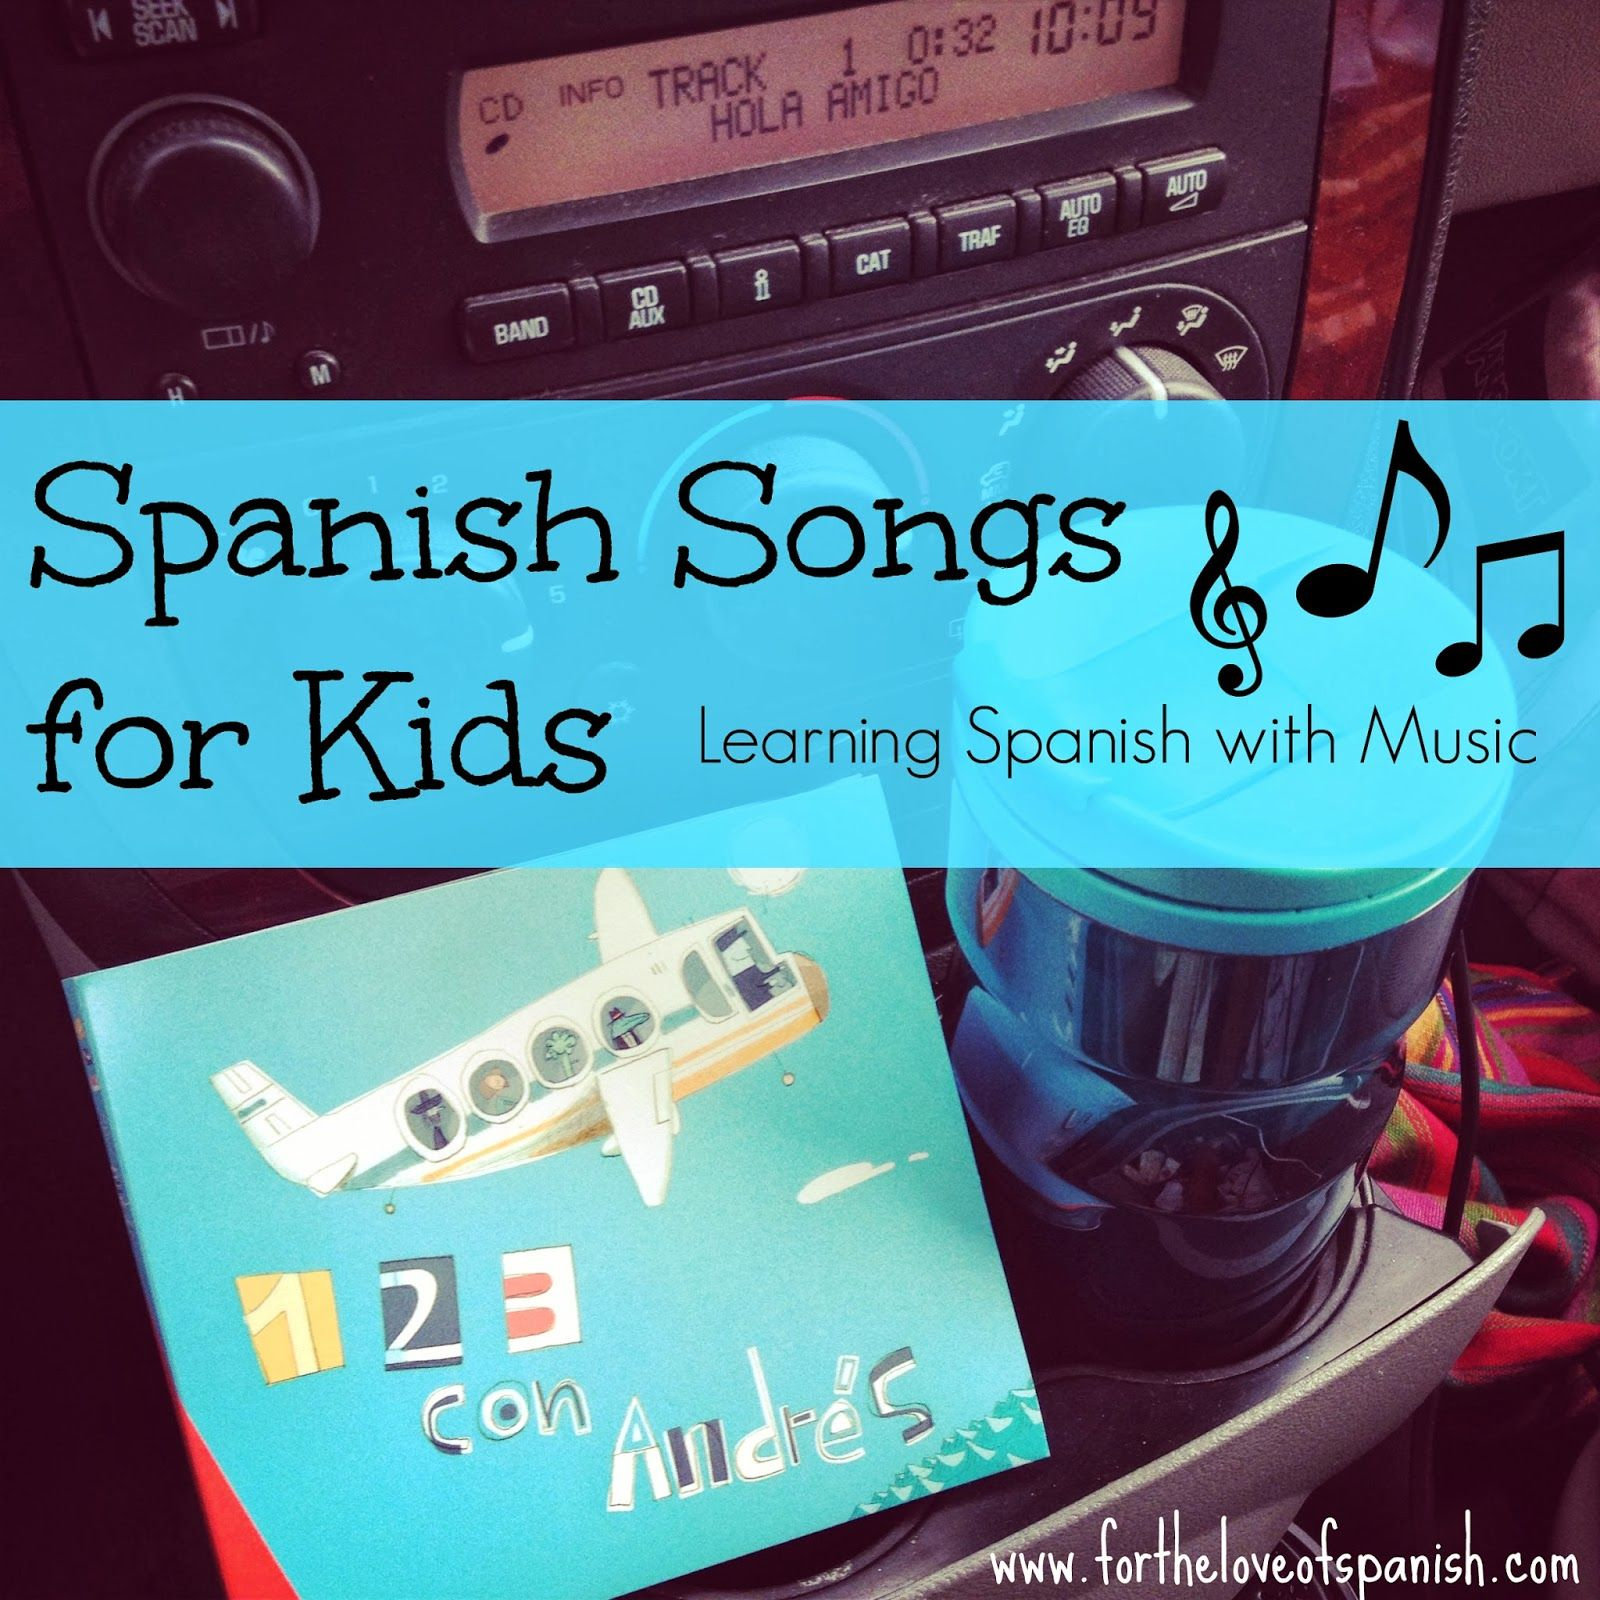 Learn Spanish through Music - Popular Spanish Songs